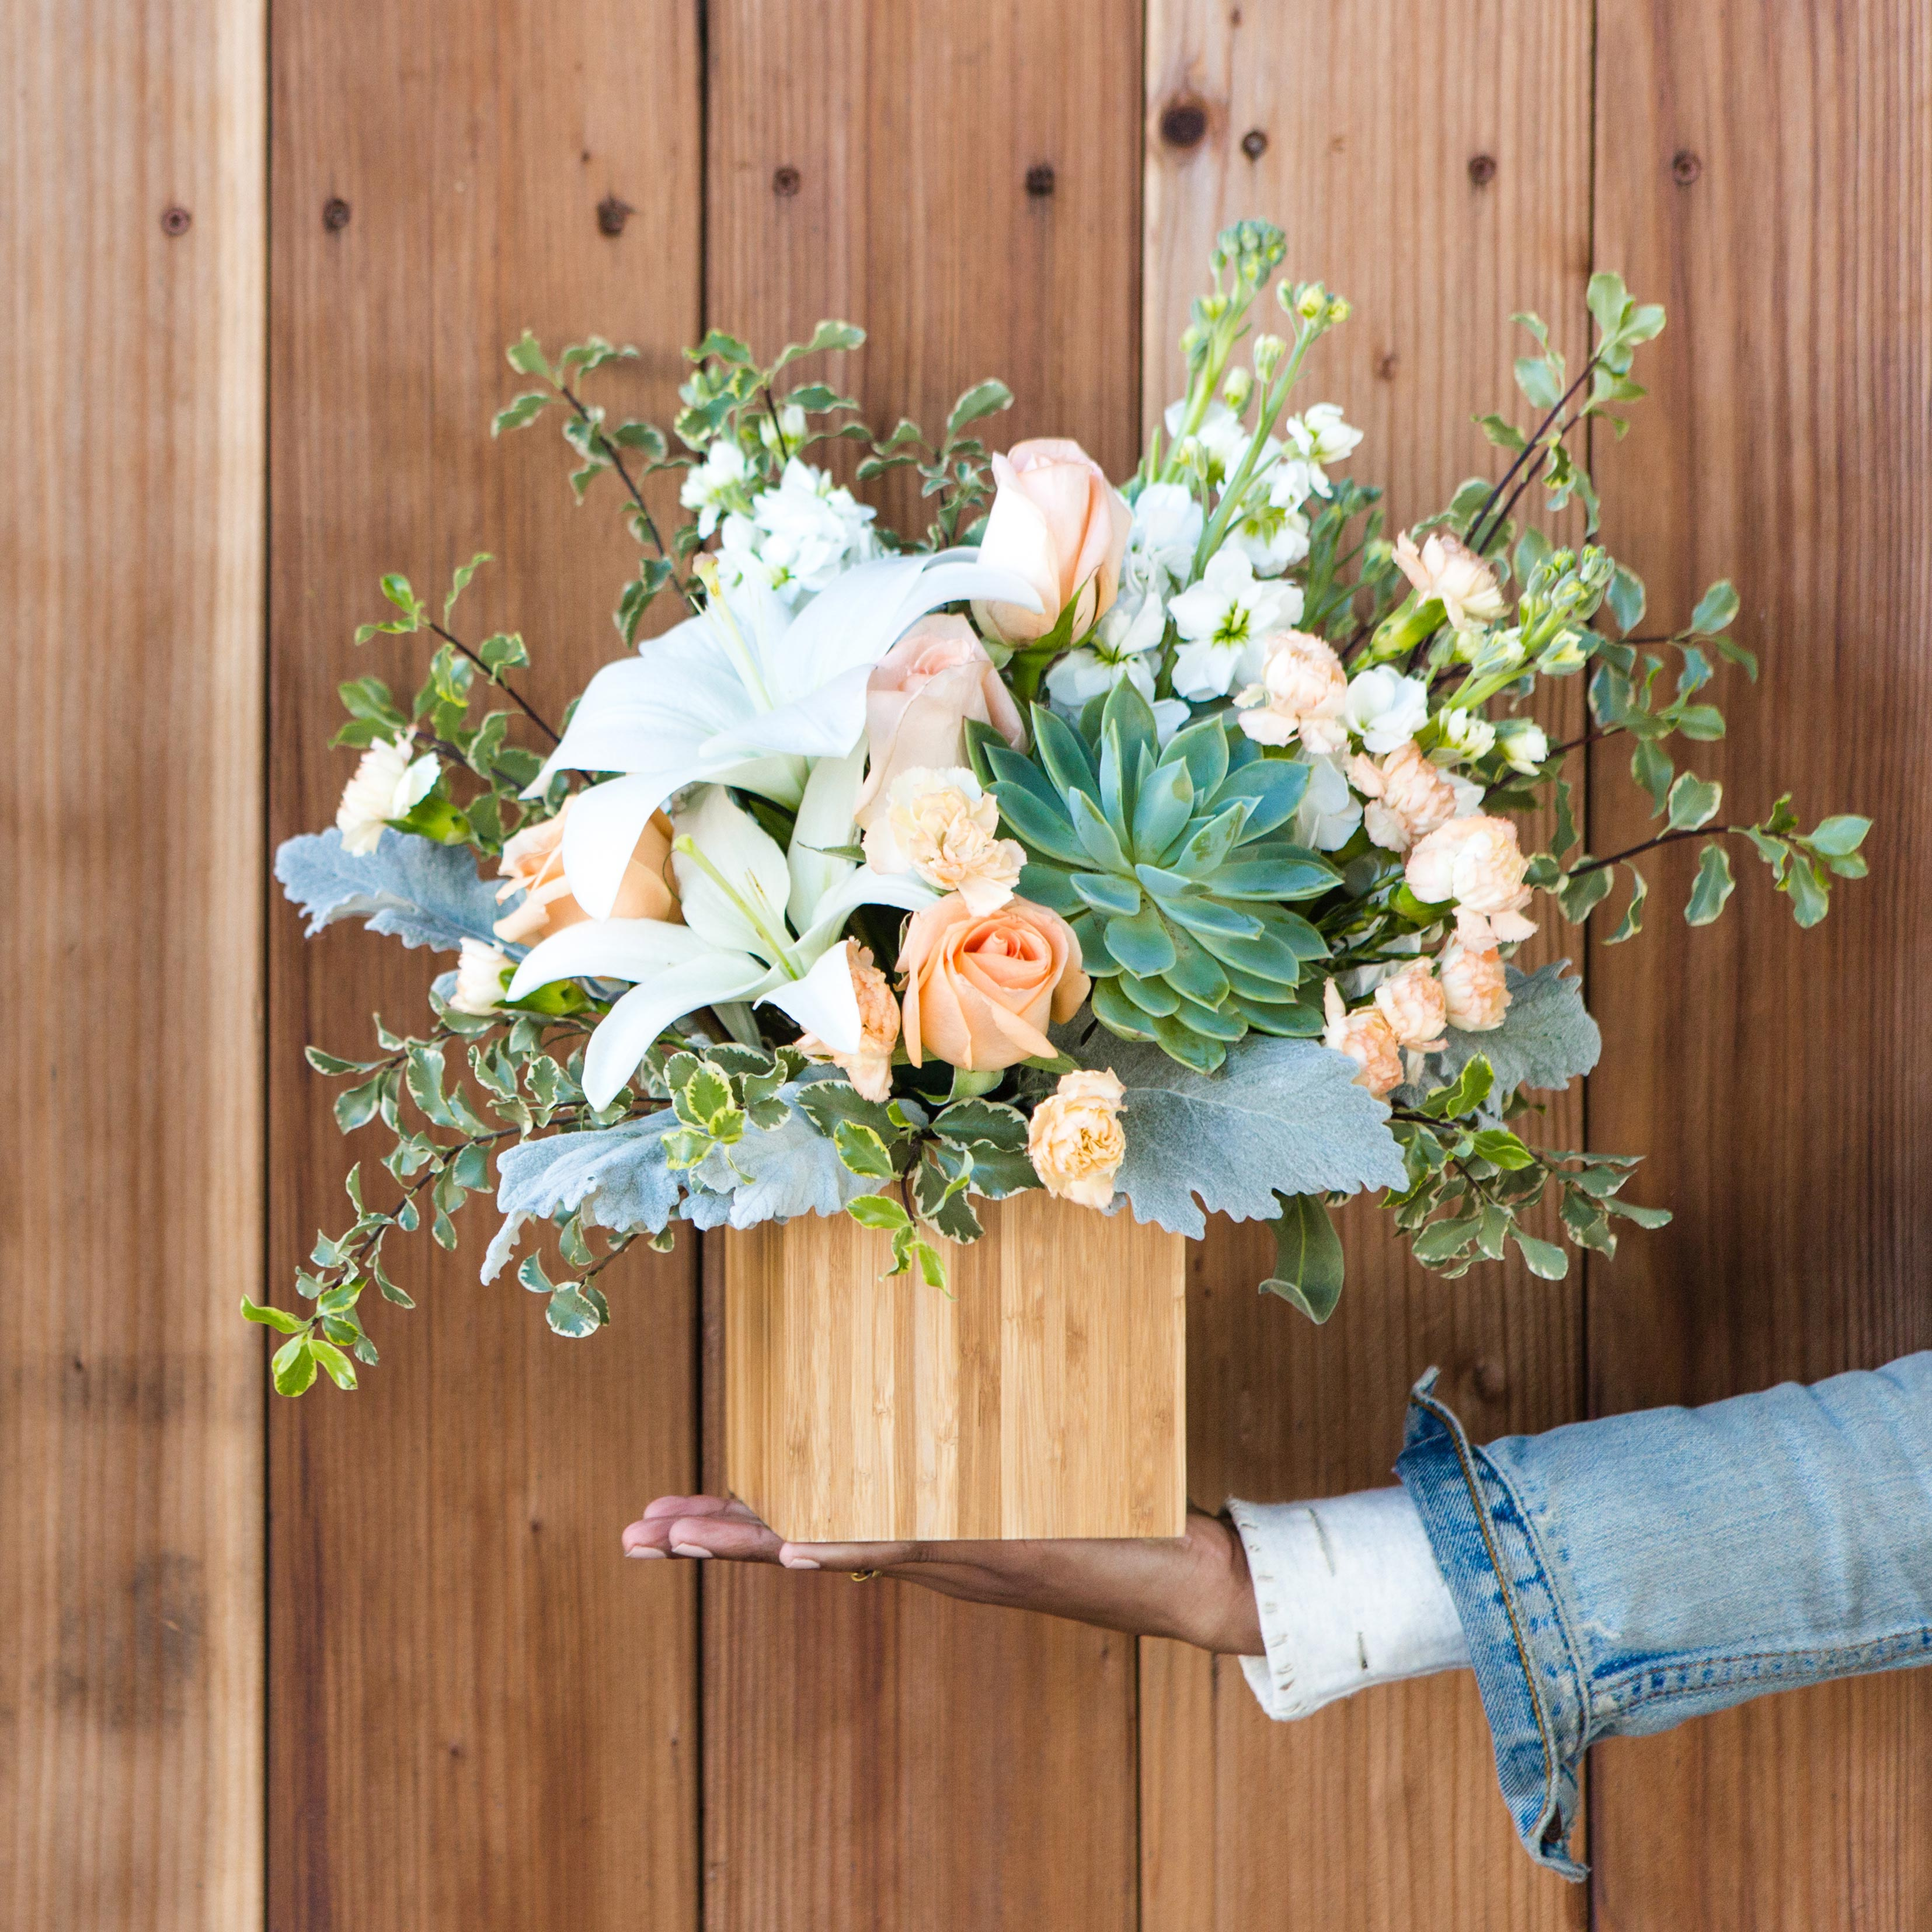 Teleflora inspirations for summer wedding bouquets you can also use this bouquet as wedding decor each collective arrangement comes encased in a beautiful natural bamboo cube bringing the theme together izmirmasajfo